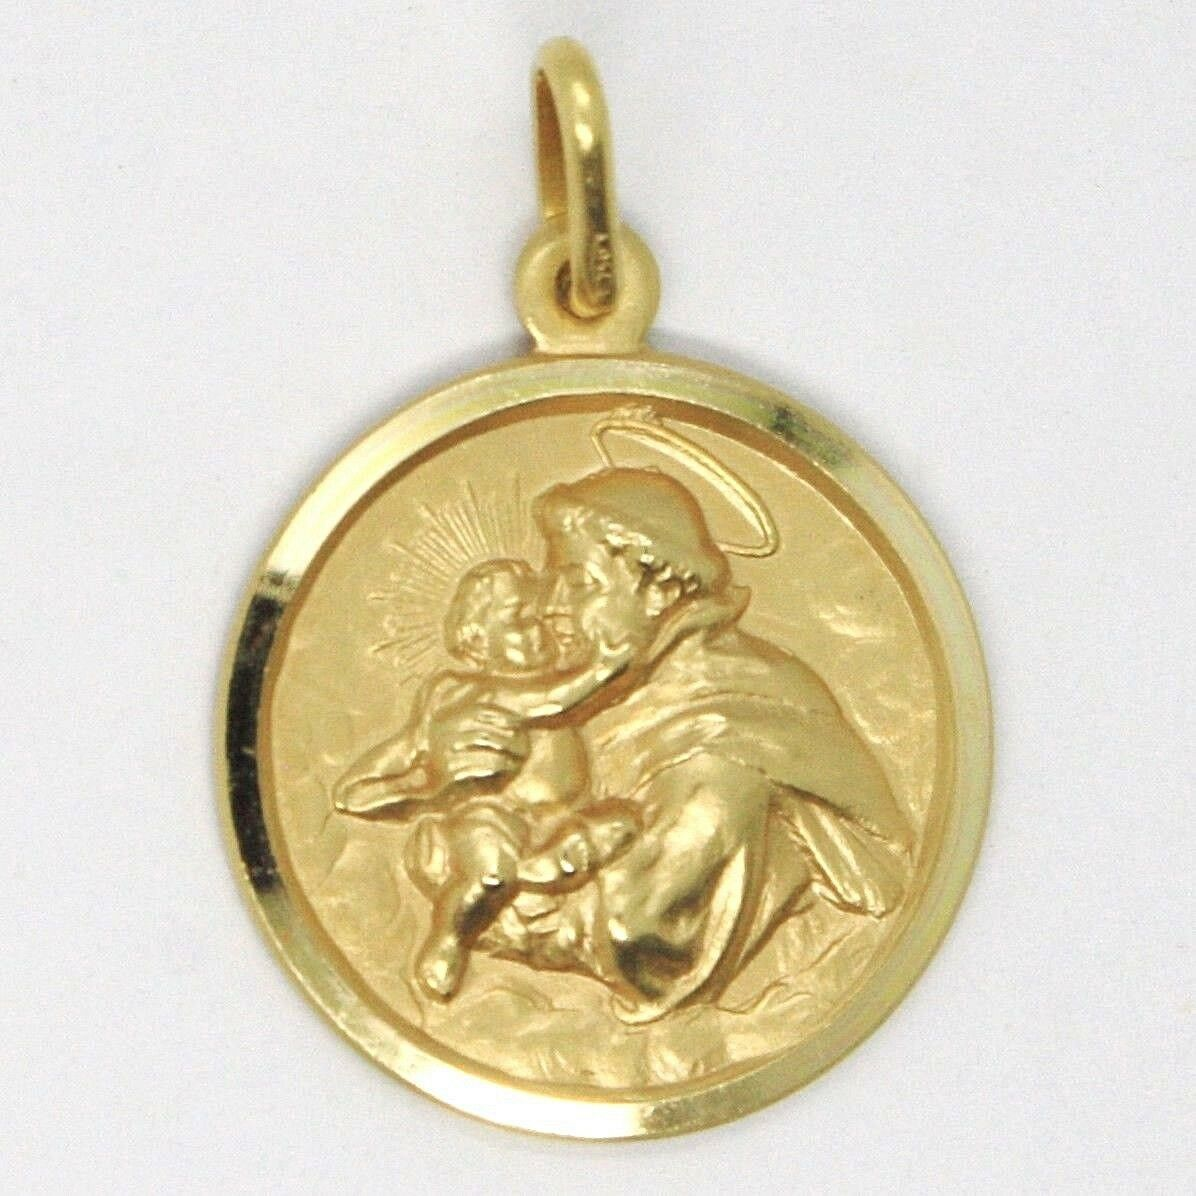 18K YELLOW GOLD ST SAINT ANTHONY PADUA SANT ANTONIO MEDAL MADE IN ITALY, 19 MM